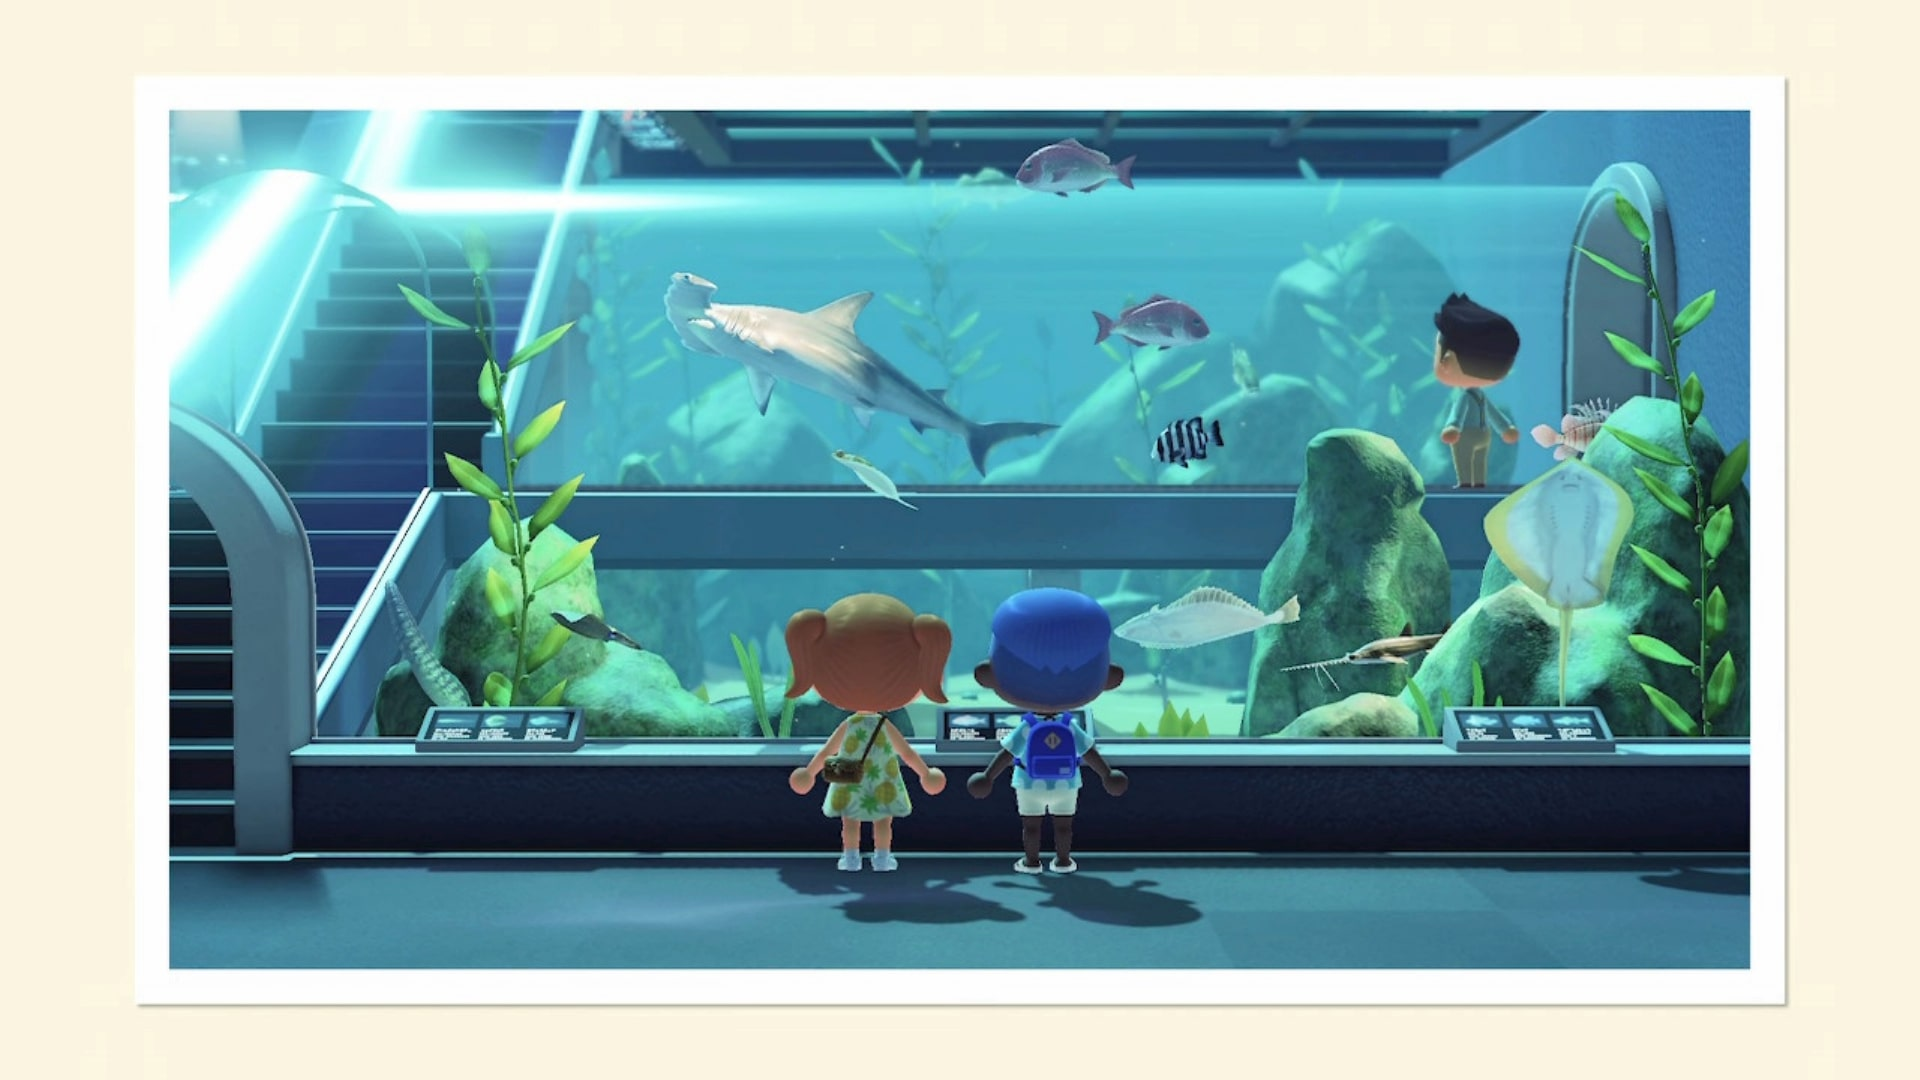 Animal Crossing New Horizons How To Get A Fishing Rod And Catch Fish Usgamer